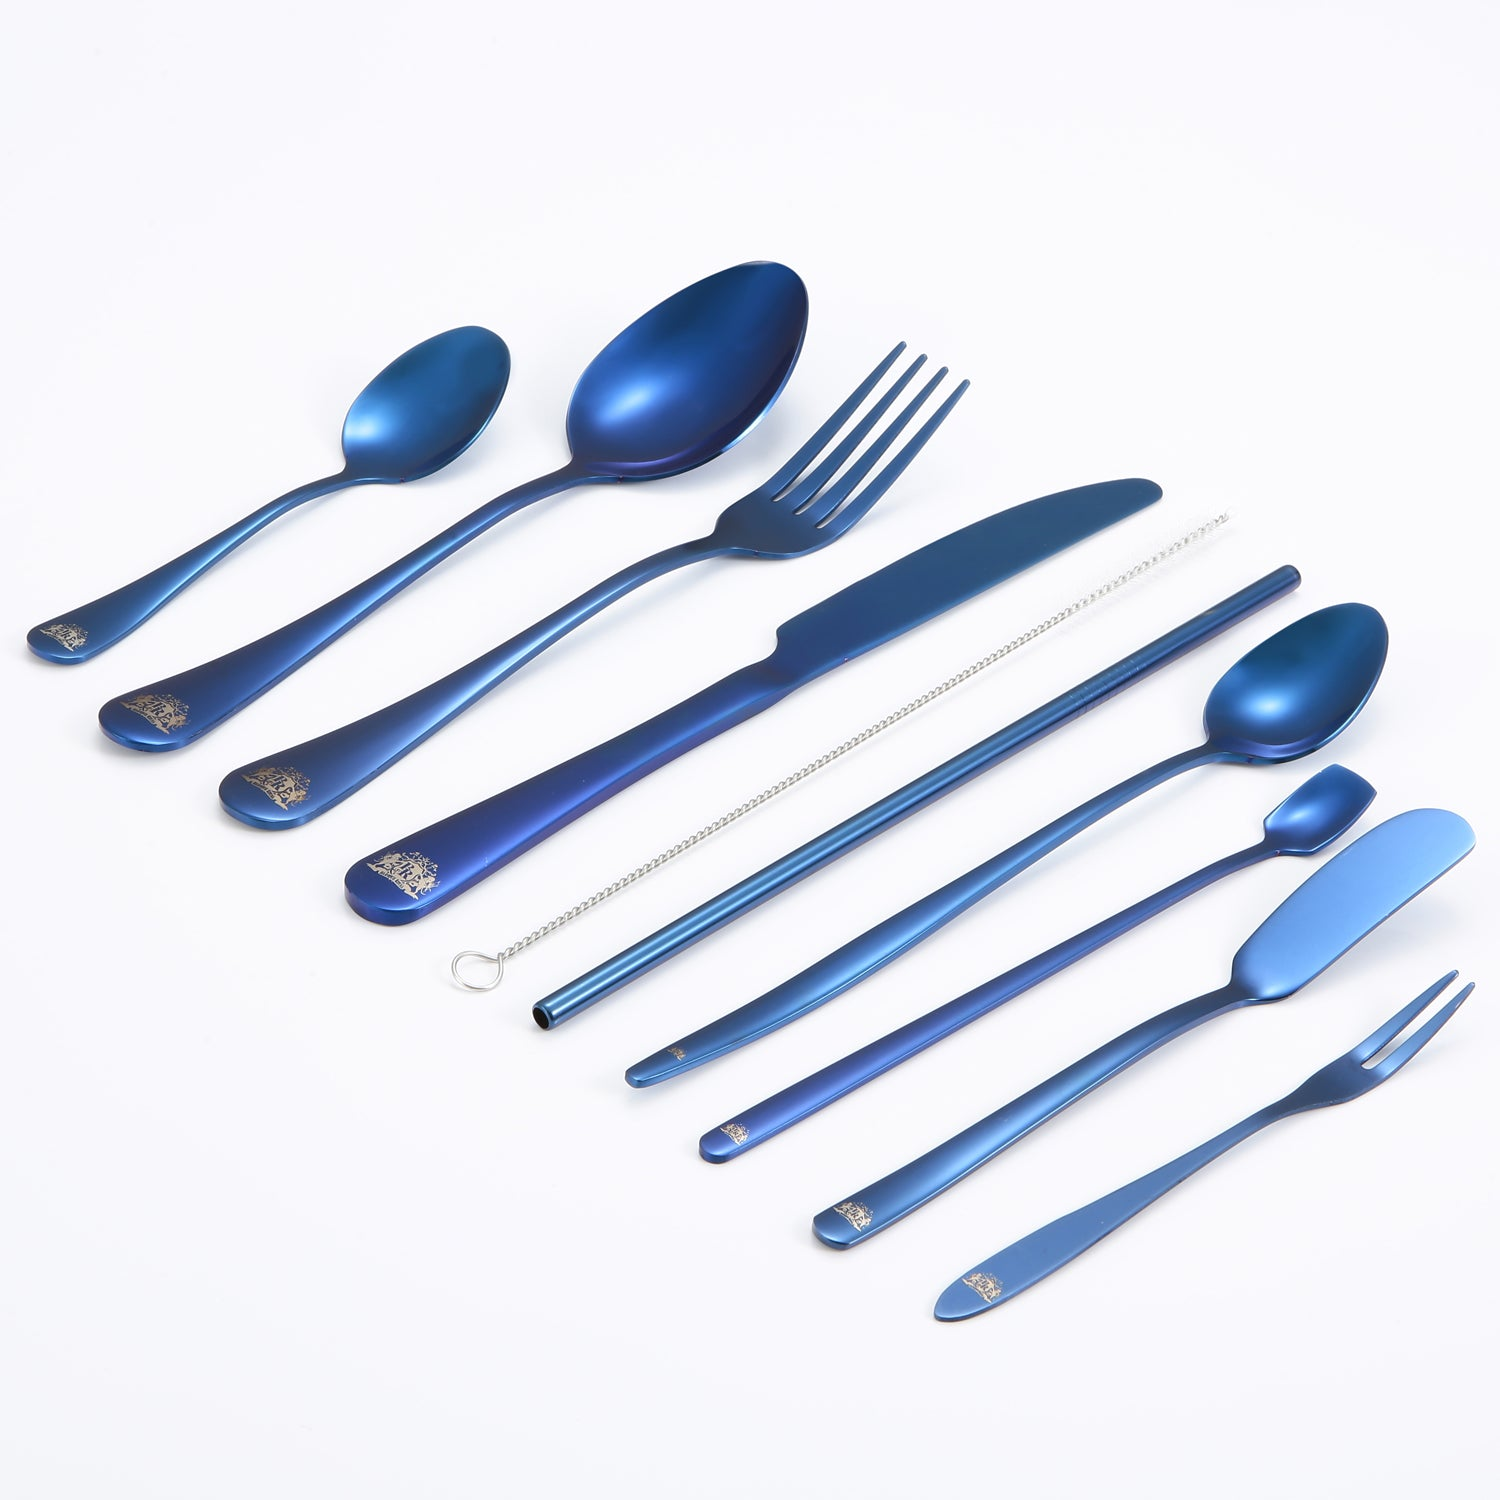 10-Piece Portable Travel Utensils Set - Blue